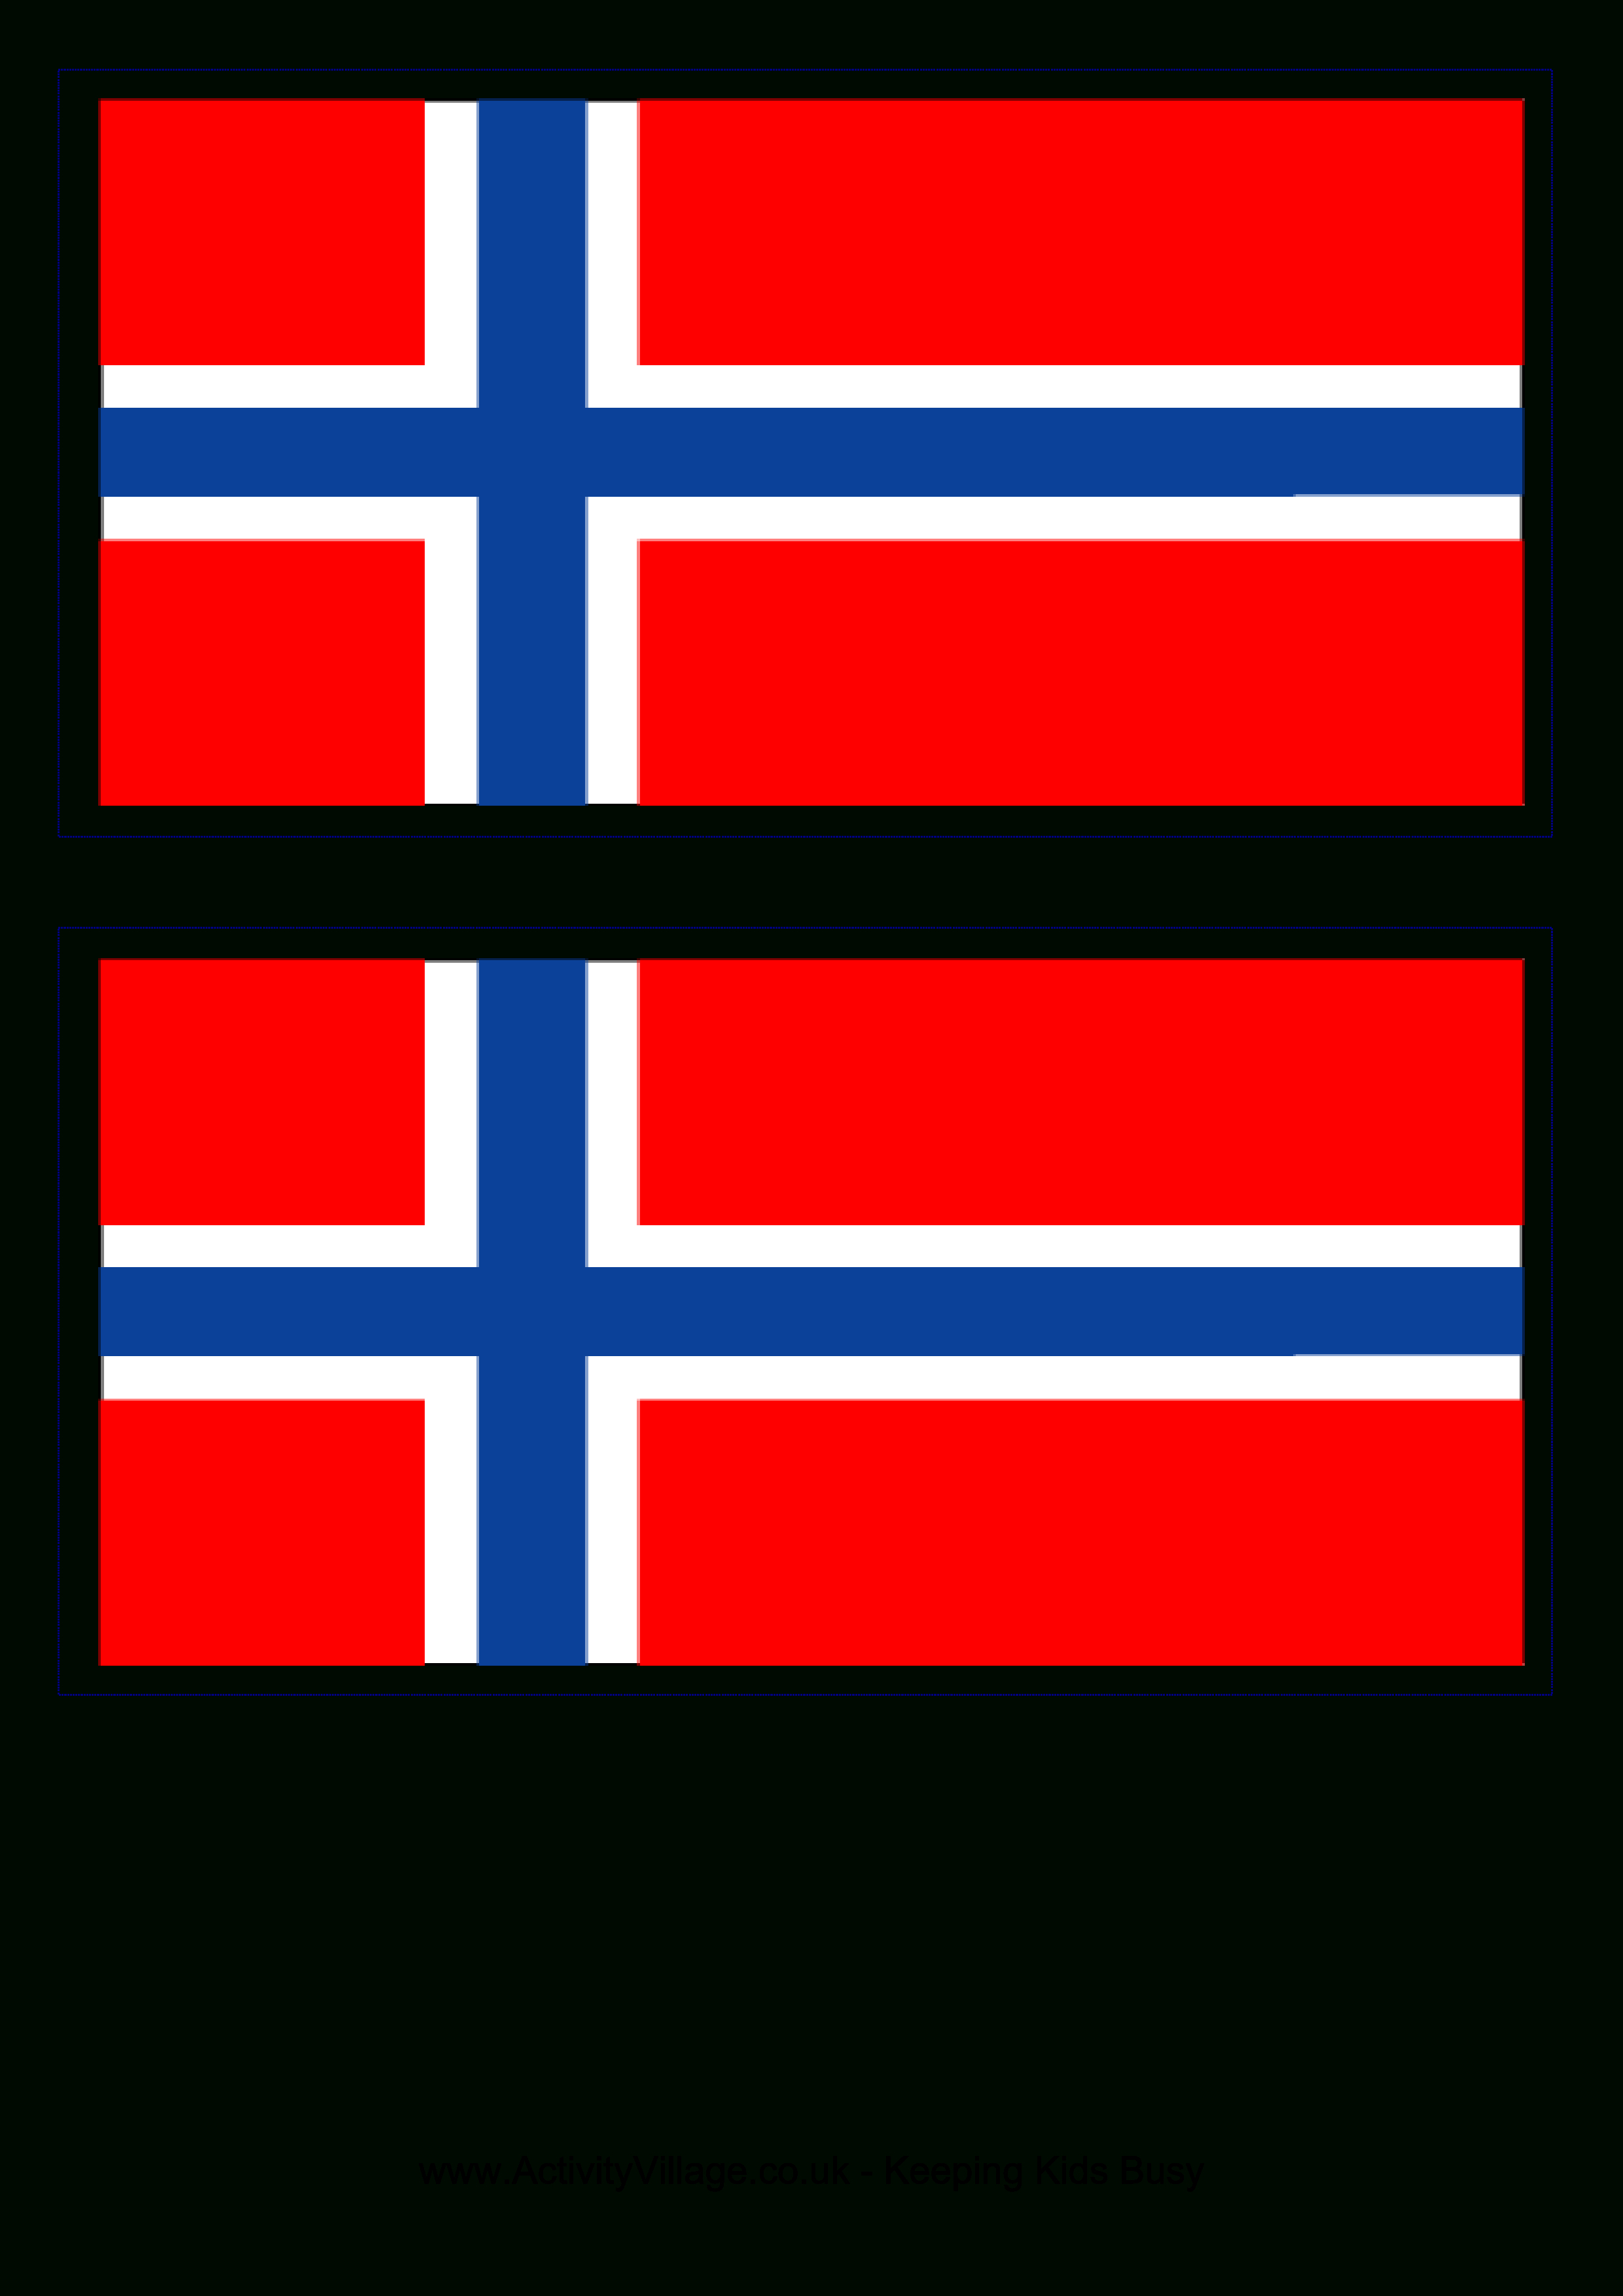 Norwegian Flag - Download This Free Printable Norwegian Template A4 - Free Printable Flags From Around The World